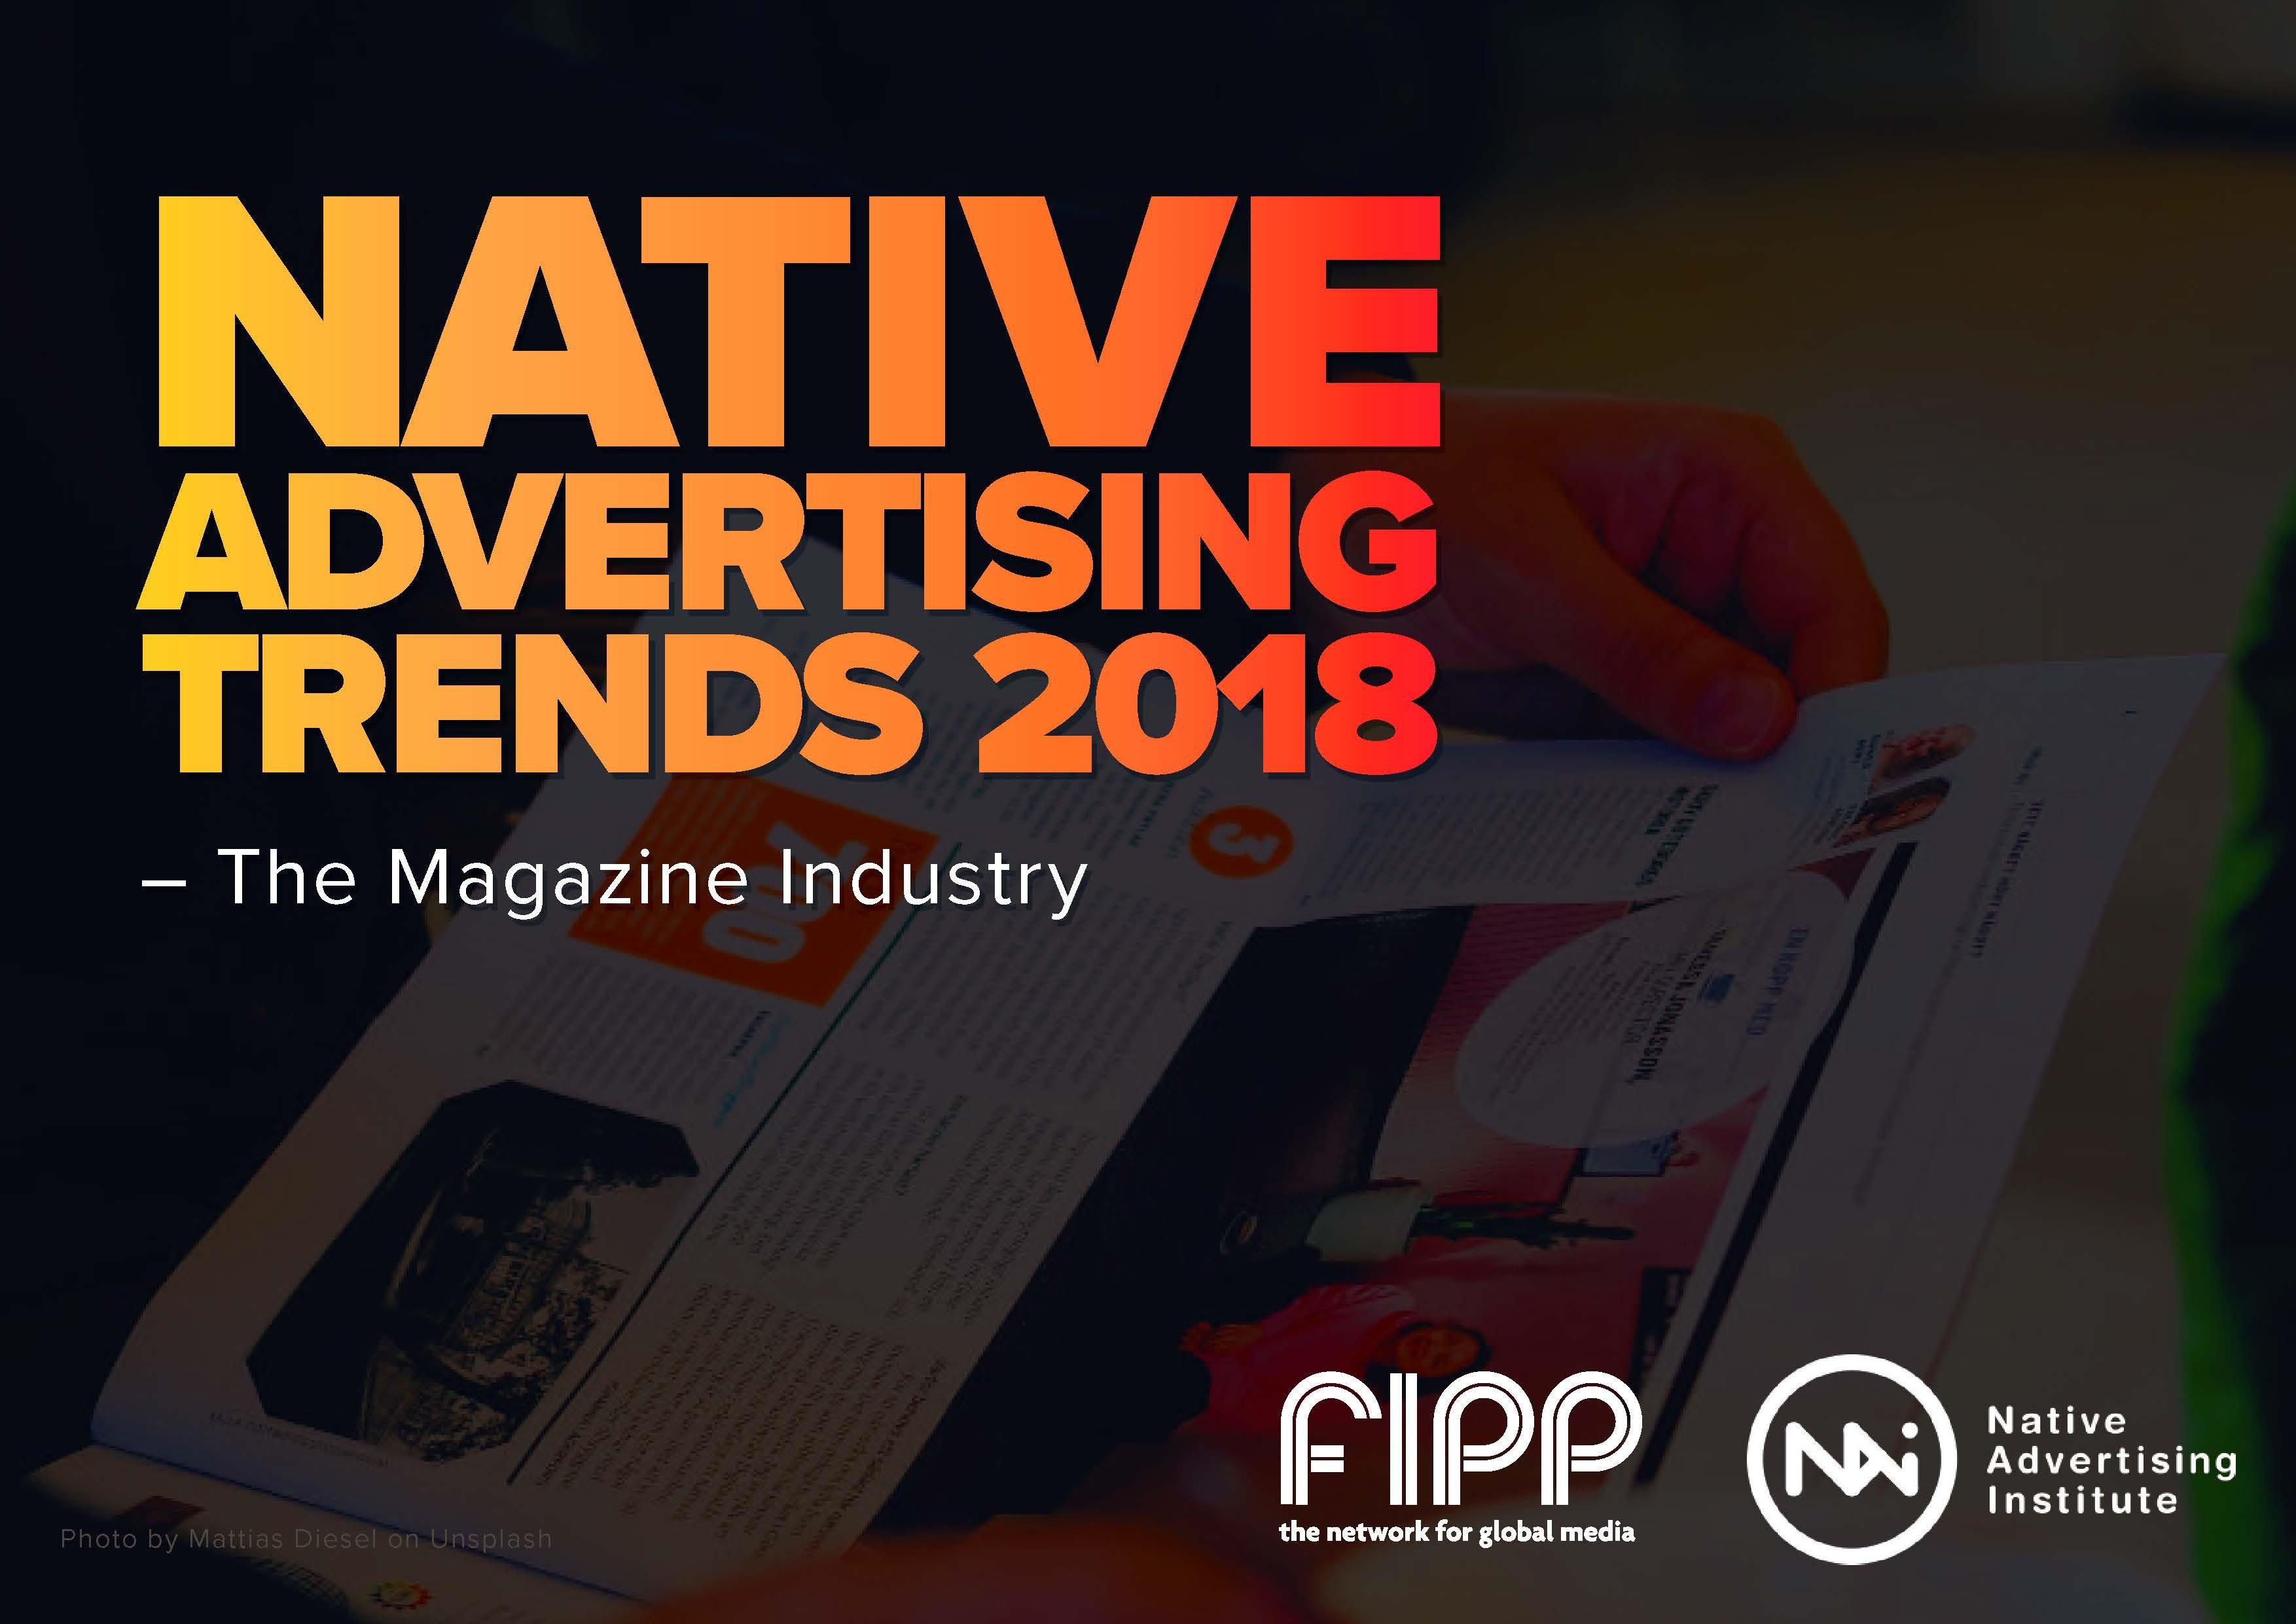 Native Advertising Trends 2018 shows growing importance of